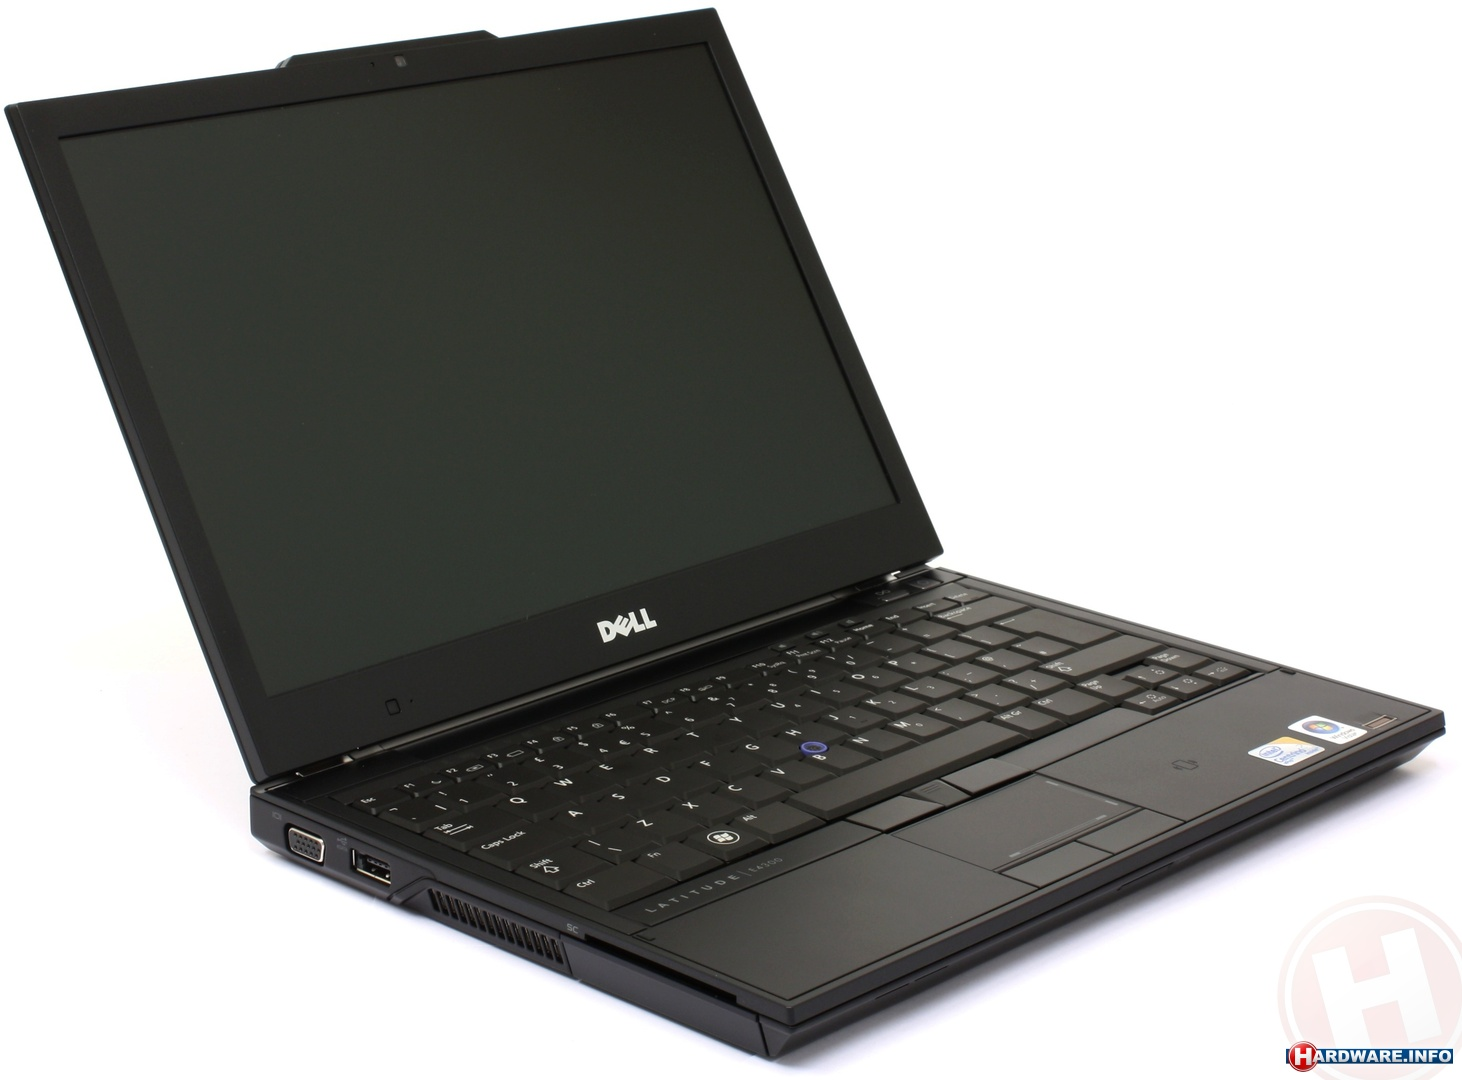 Dell Latitude E4300 Notebook Intel Core 2 Duo 2.53GHz, 2GB RAM, 160GB HDD Cheap laptops